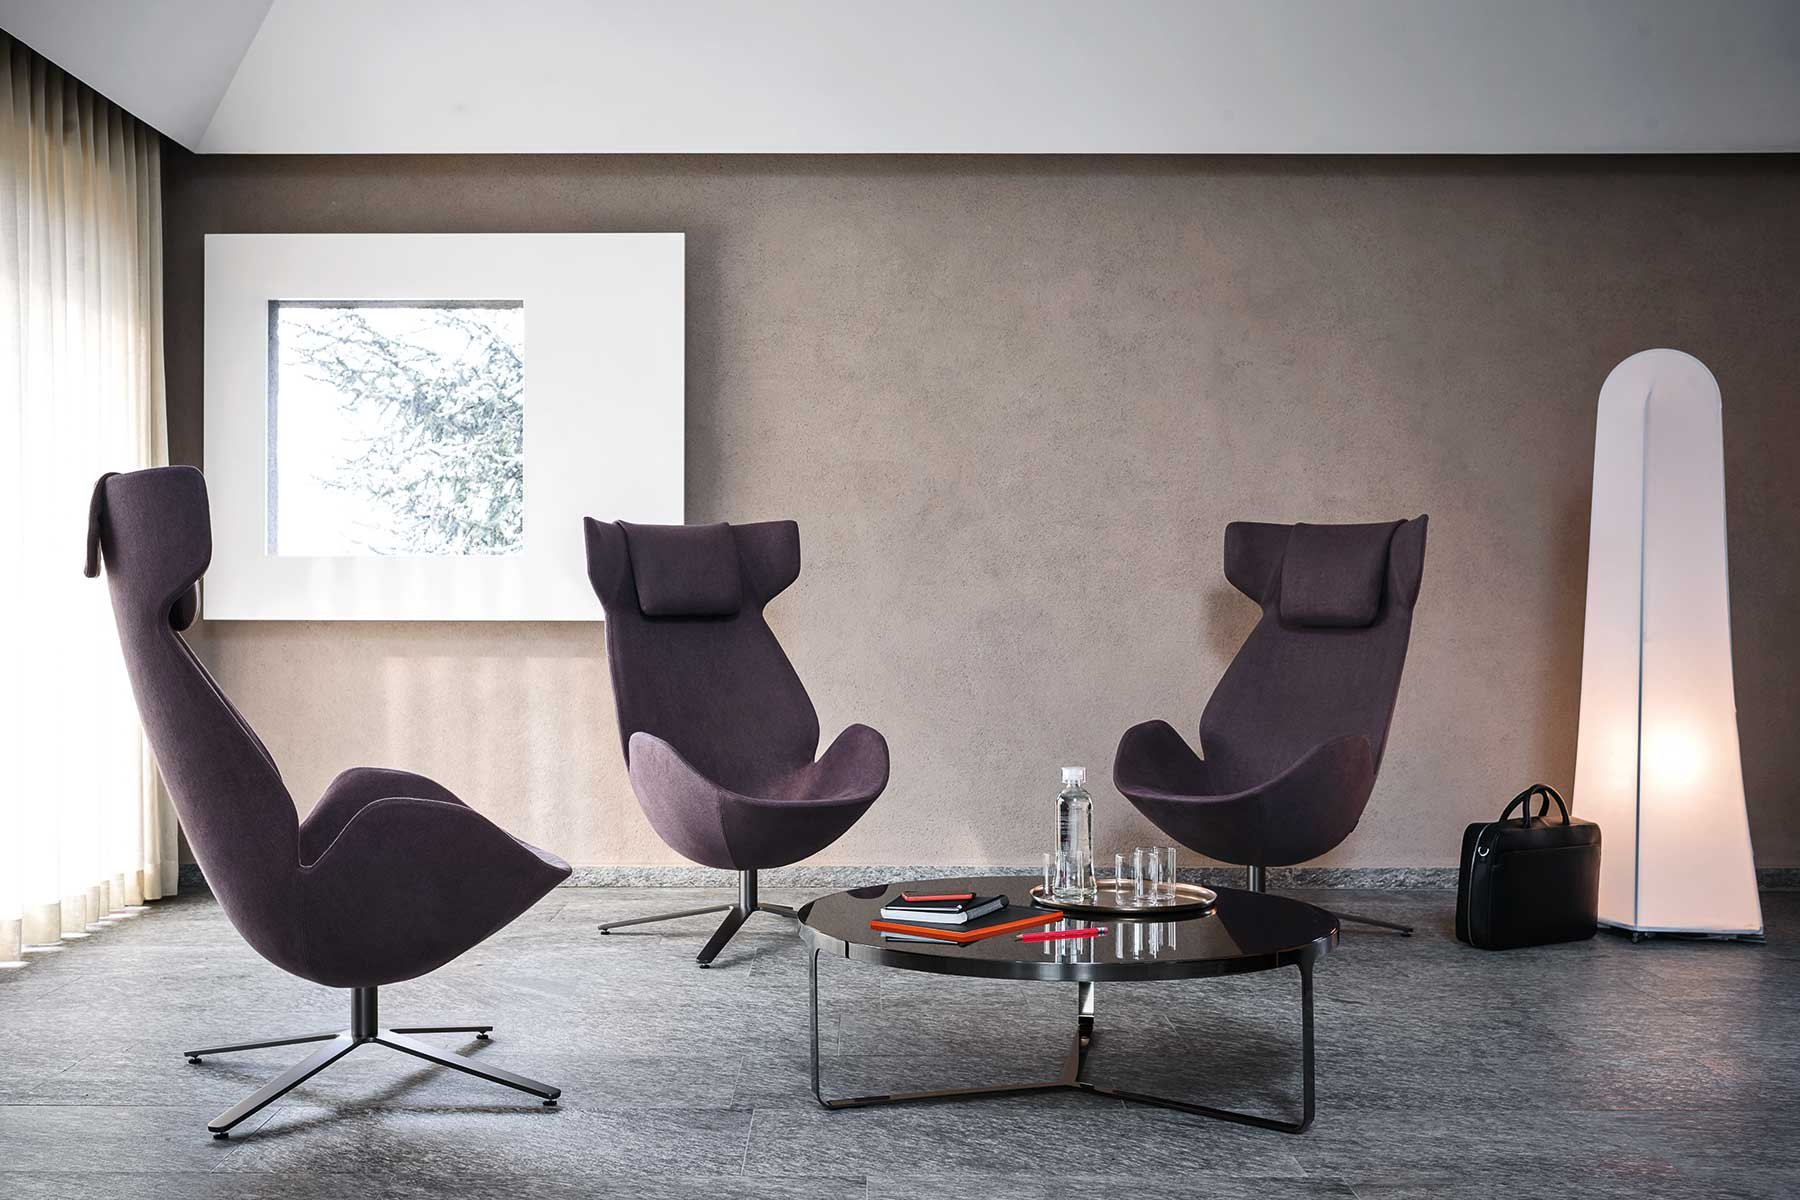 Shelter Armchair lounge from Tacchini, designed by Noé Duchaufour-Lawrance